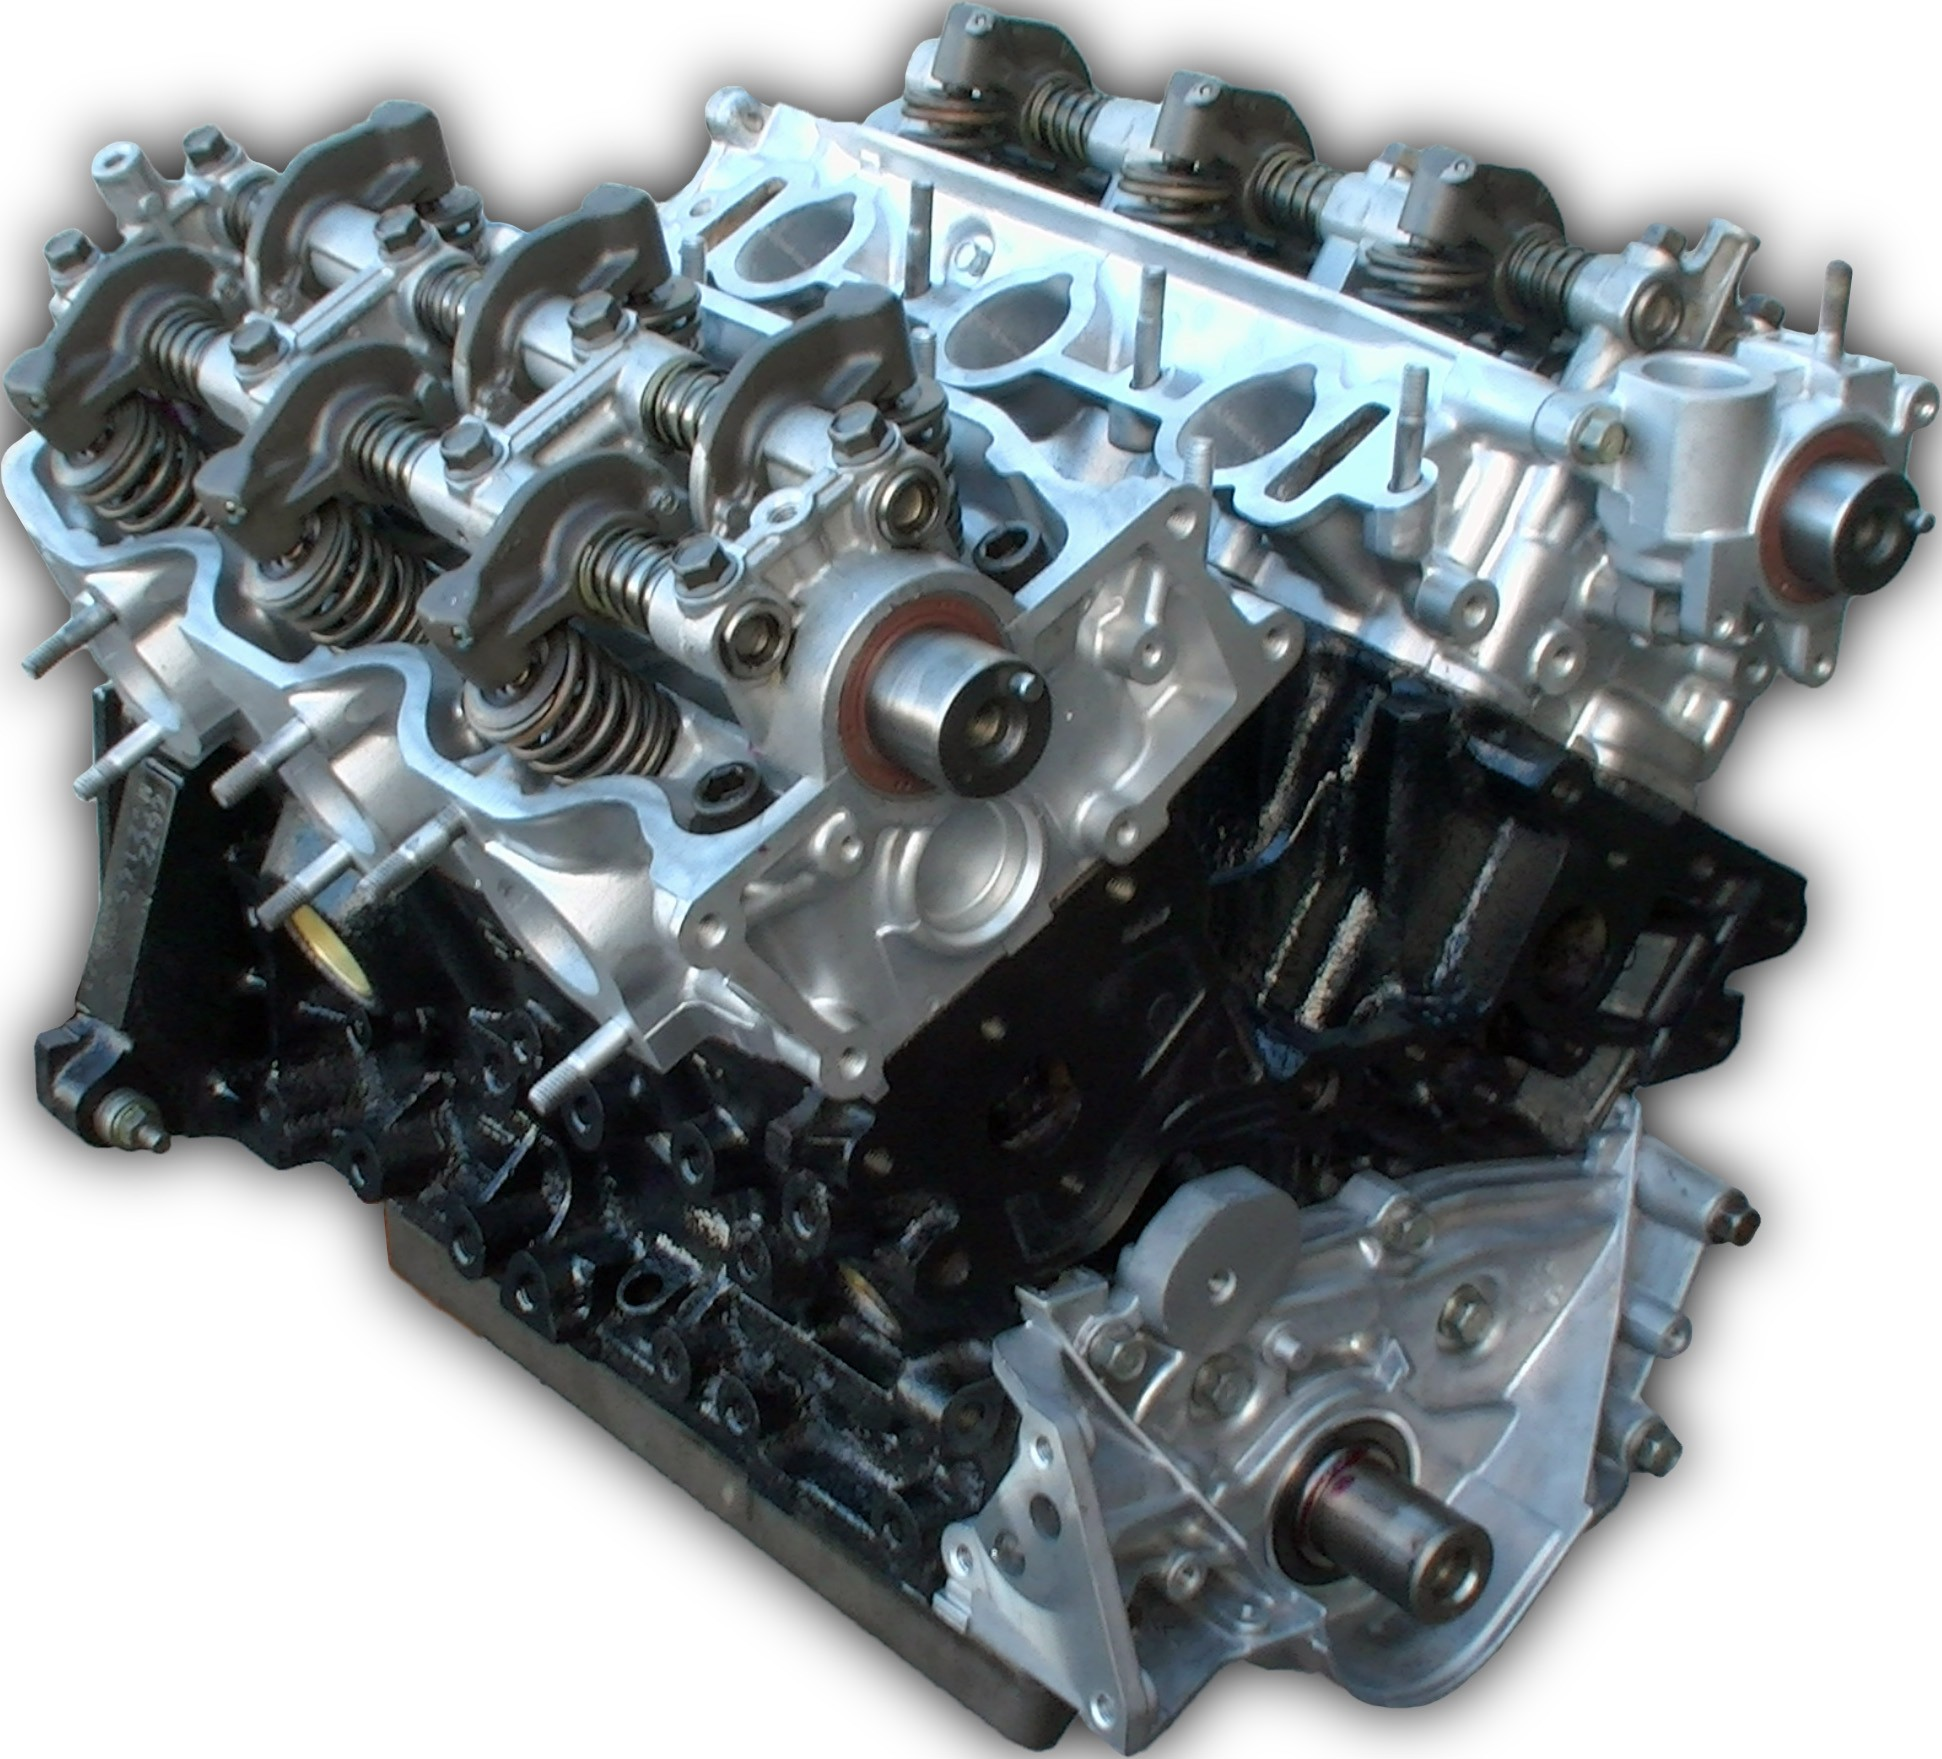 rebuilt 89 dodge raider 3 0l v6 engine  u00ab kar king auto